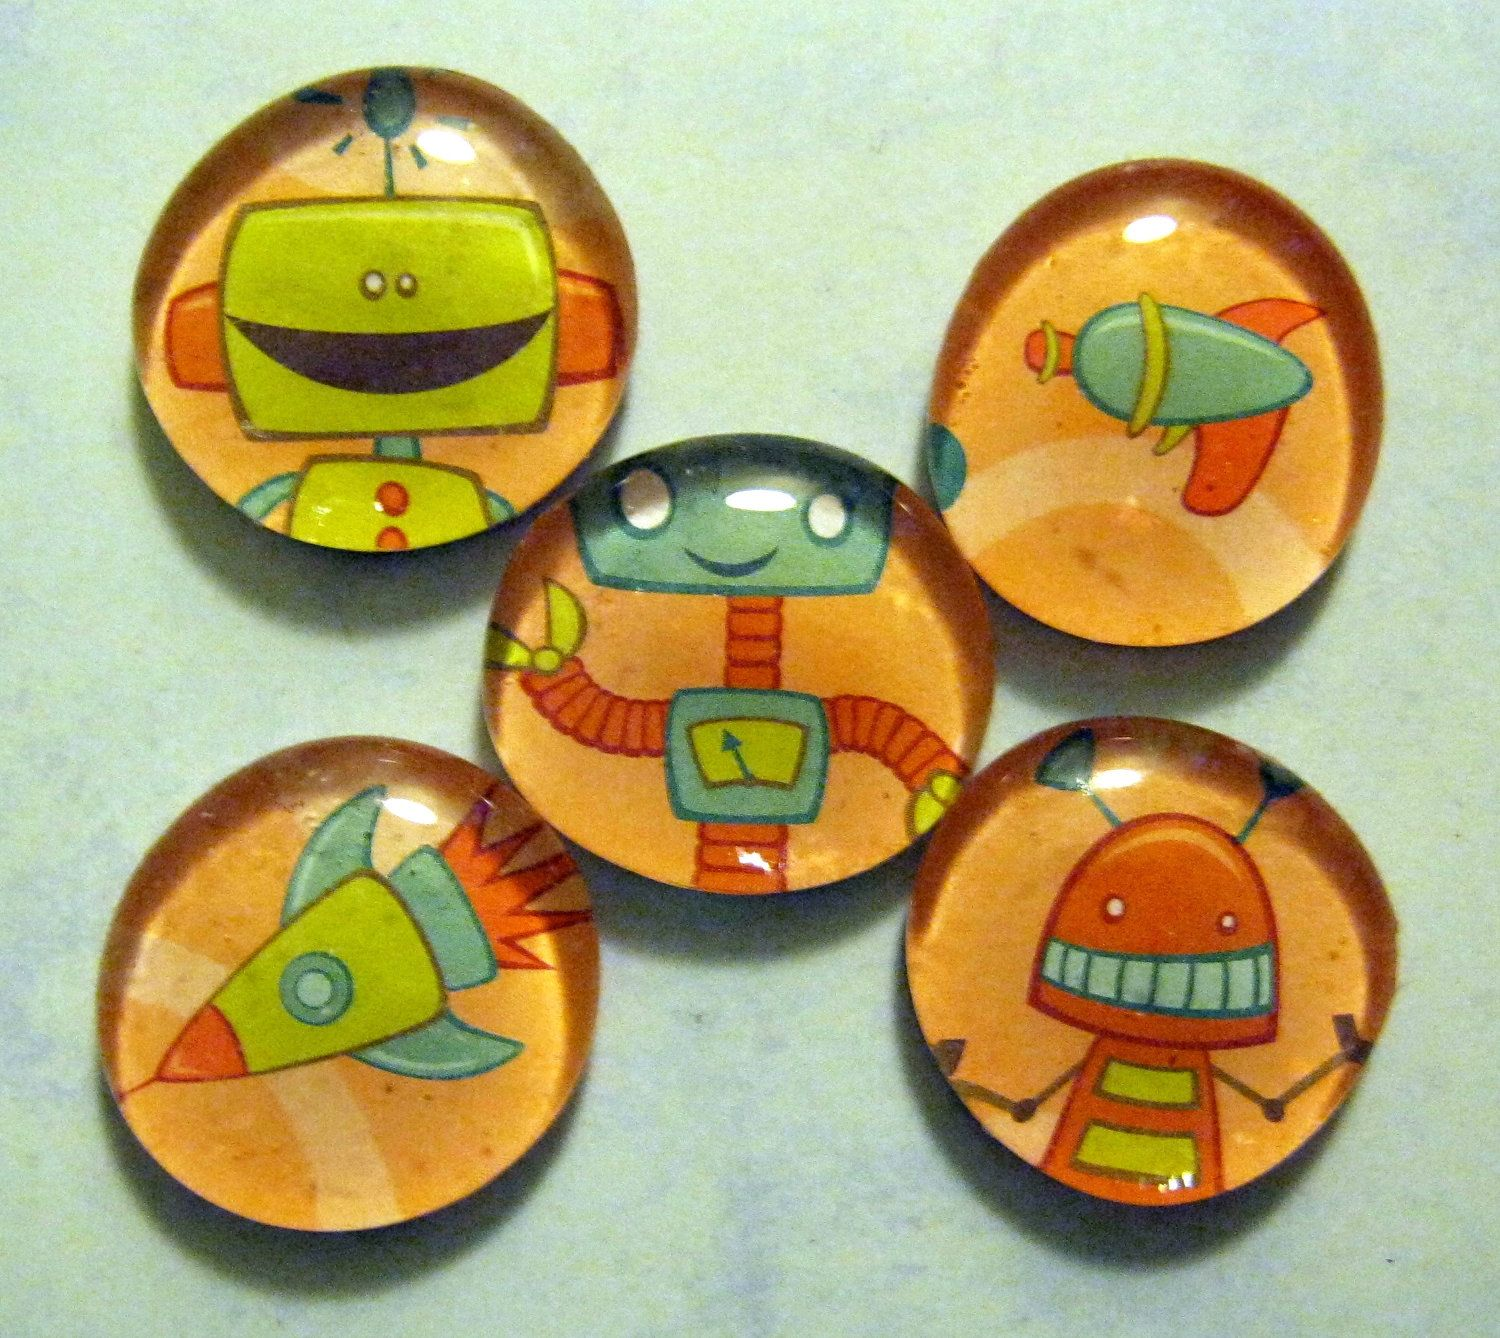 Magnet Crafts, Crafts, Cool Things To Make